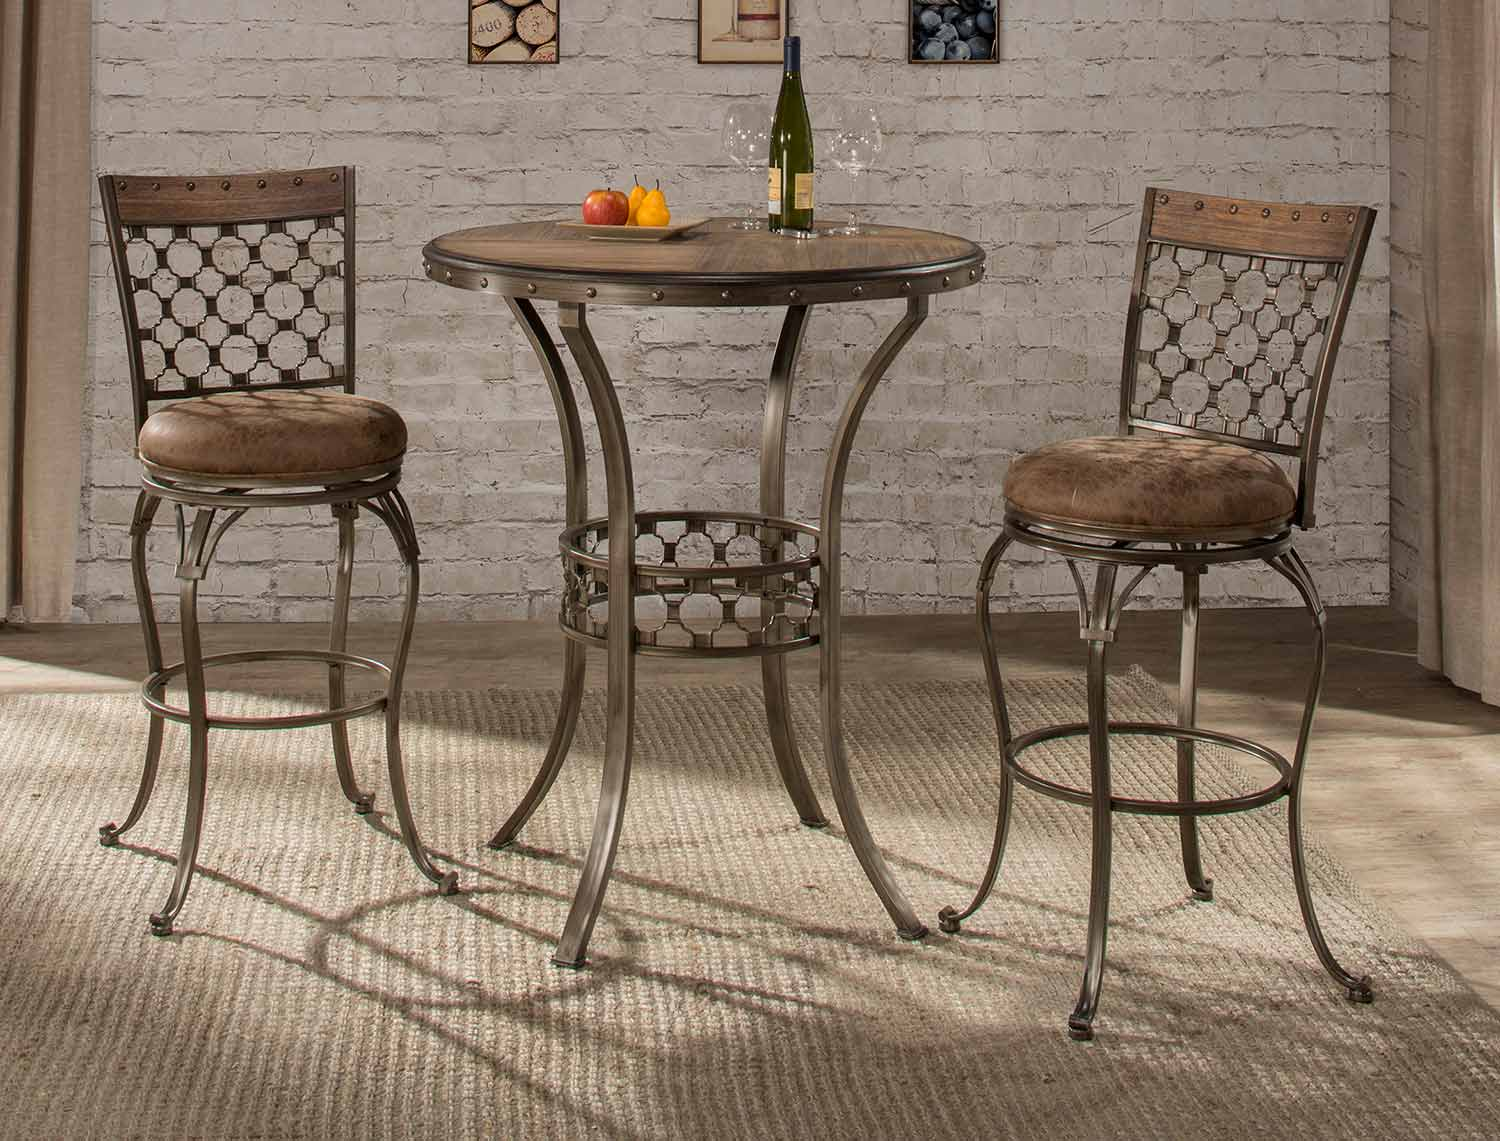 Hillsdale Lannis 3-Piece Bar Height Bistro Dining Set - Brown/Grey